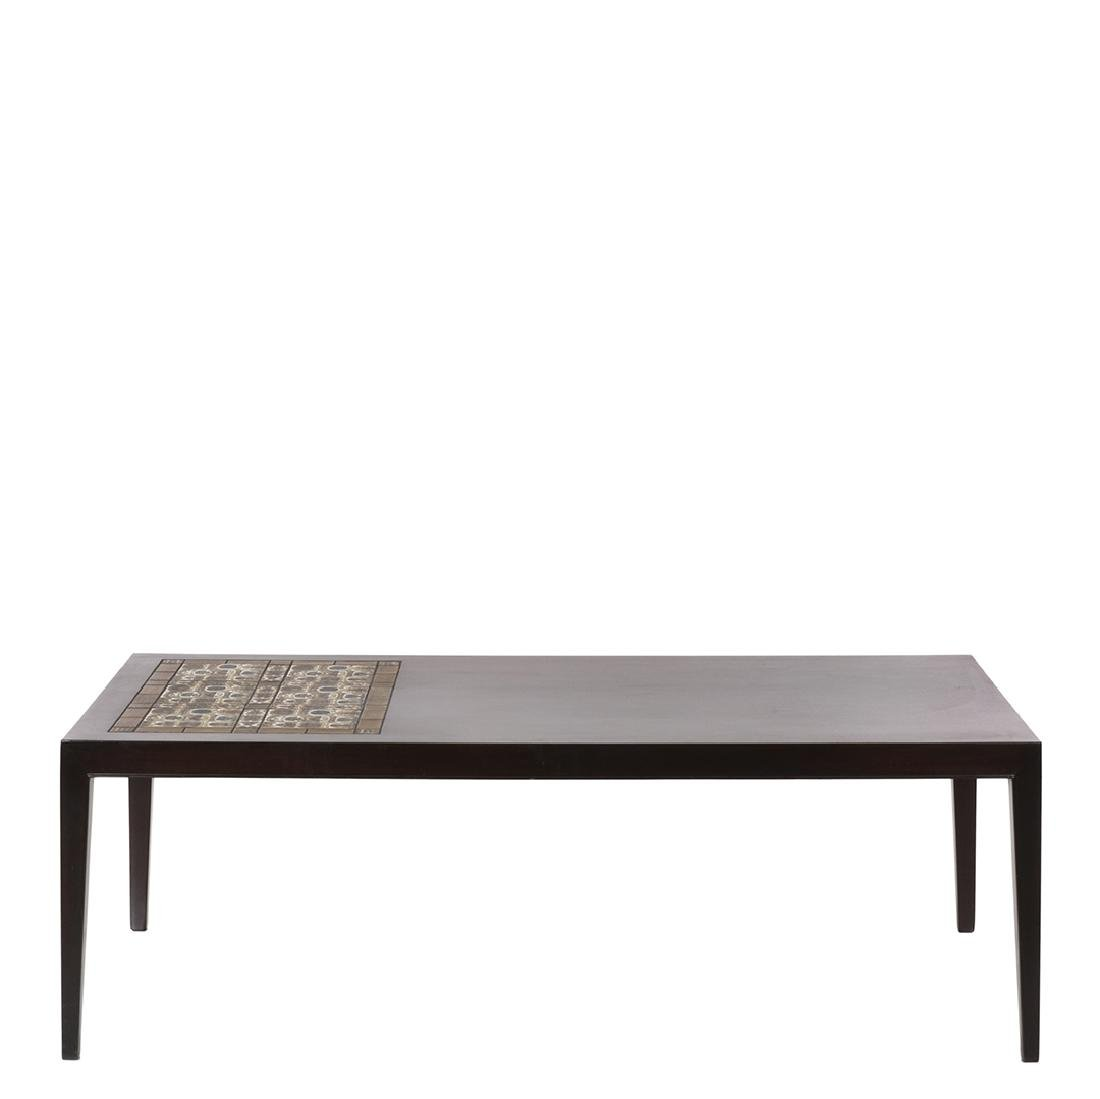 Severin Hansen Jr. and Nils Thorsson Coffee Table